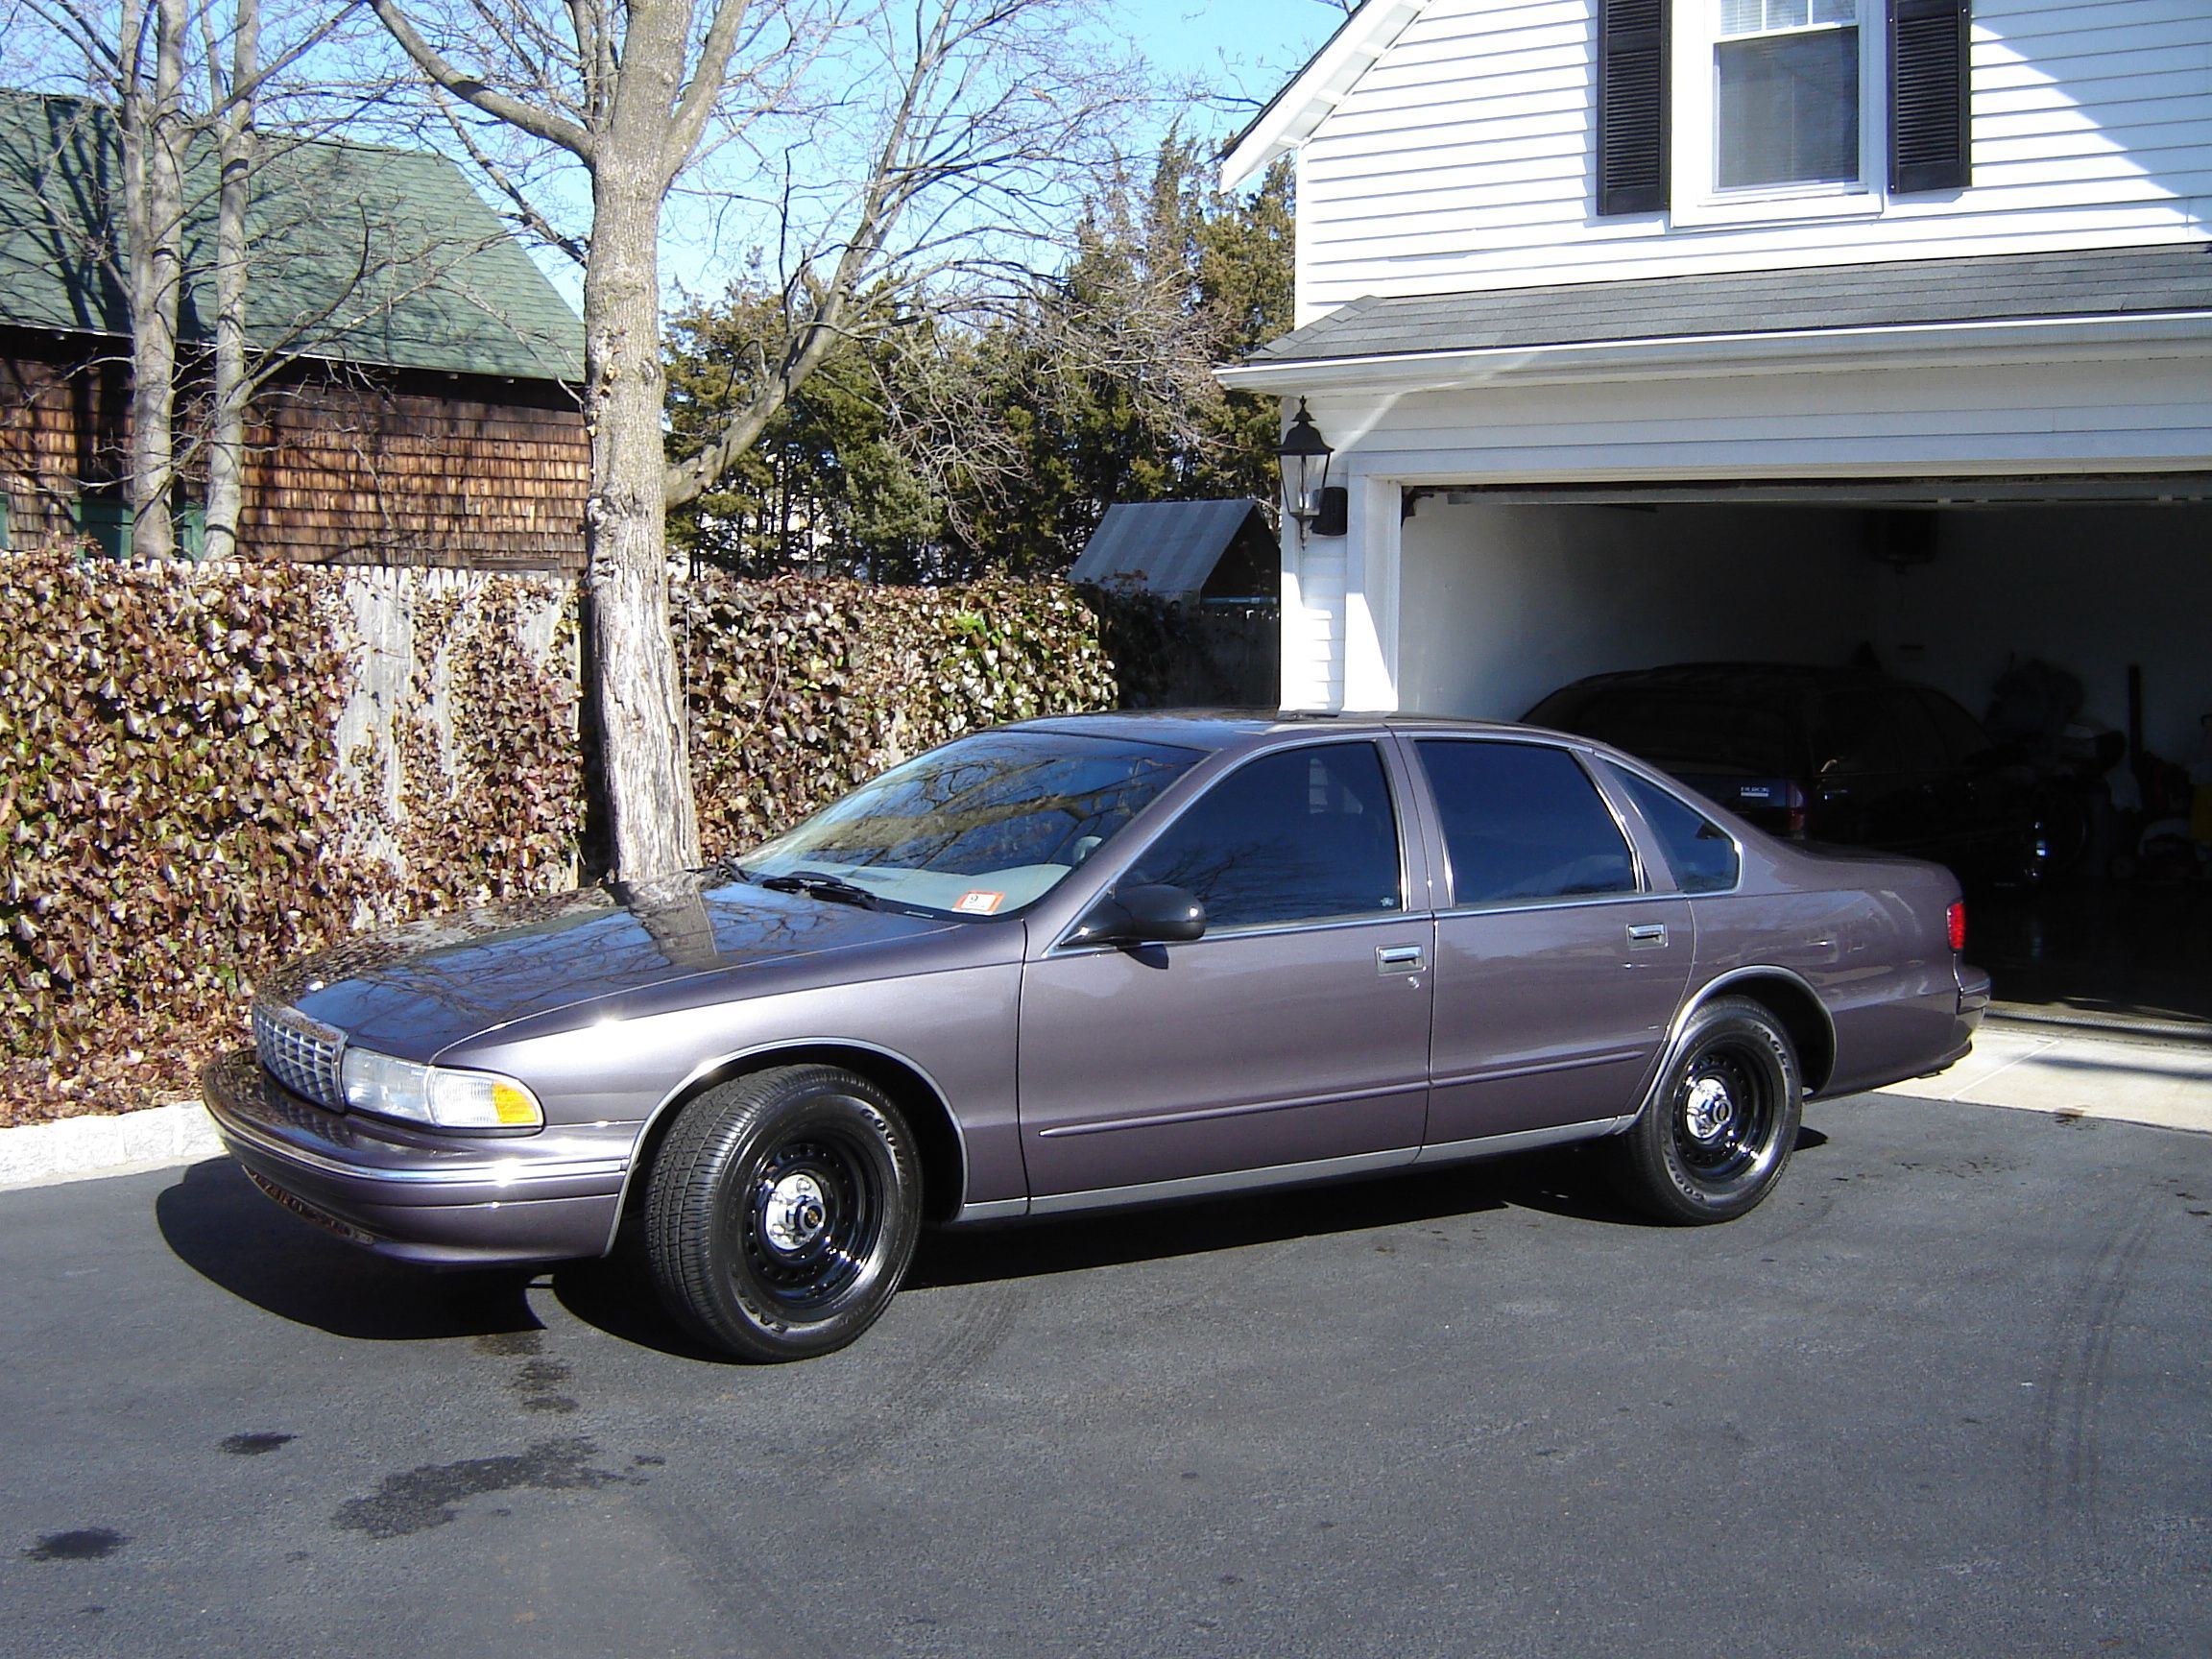 fkrause s 1995 chevrolet caprice photo gallery cardomain com chevrolet caprice chevrolet chevy caprice classic fkrause s 1995 chevrolet caprice photo